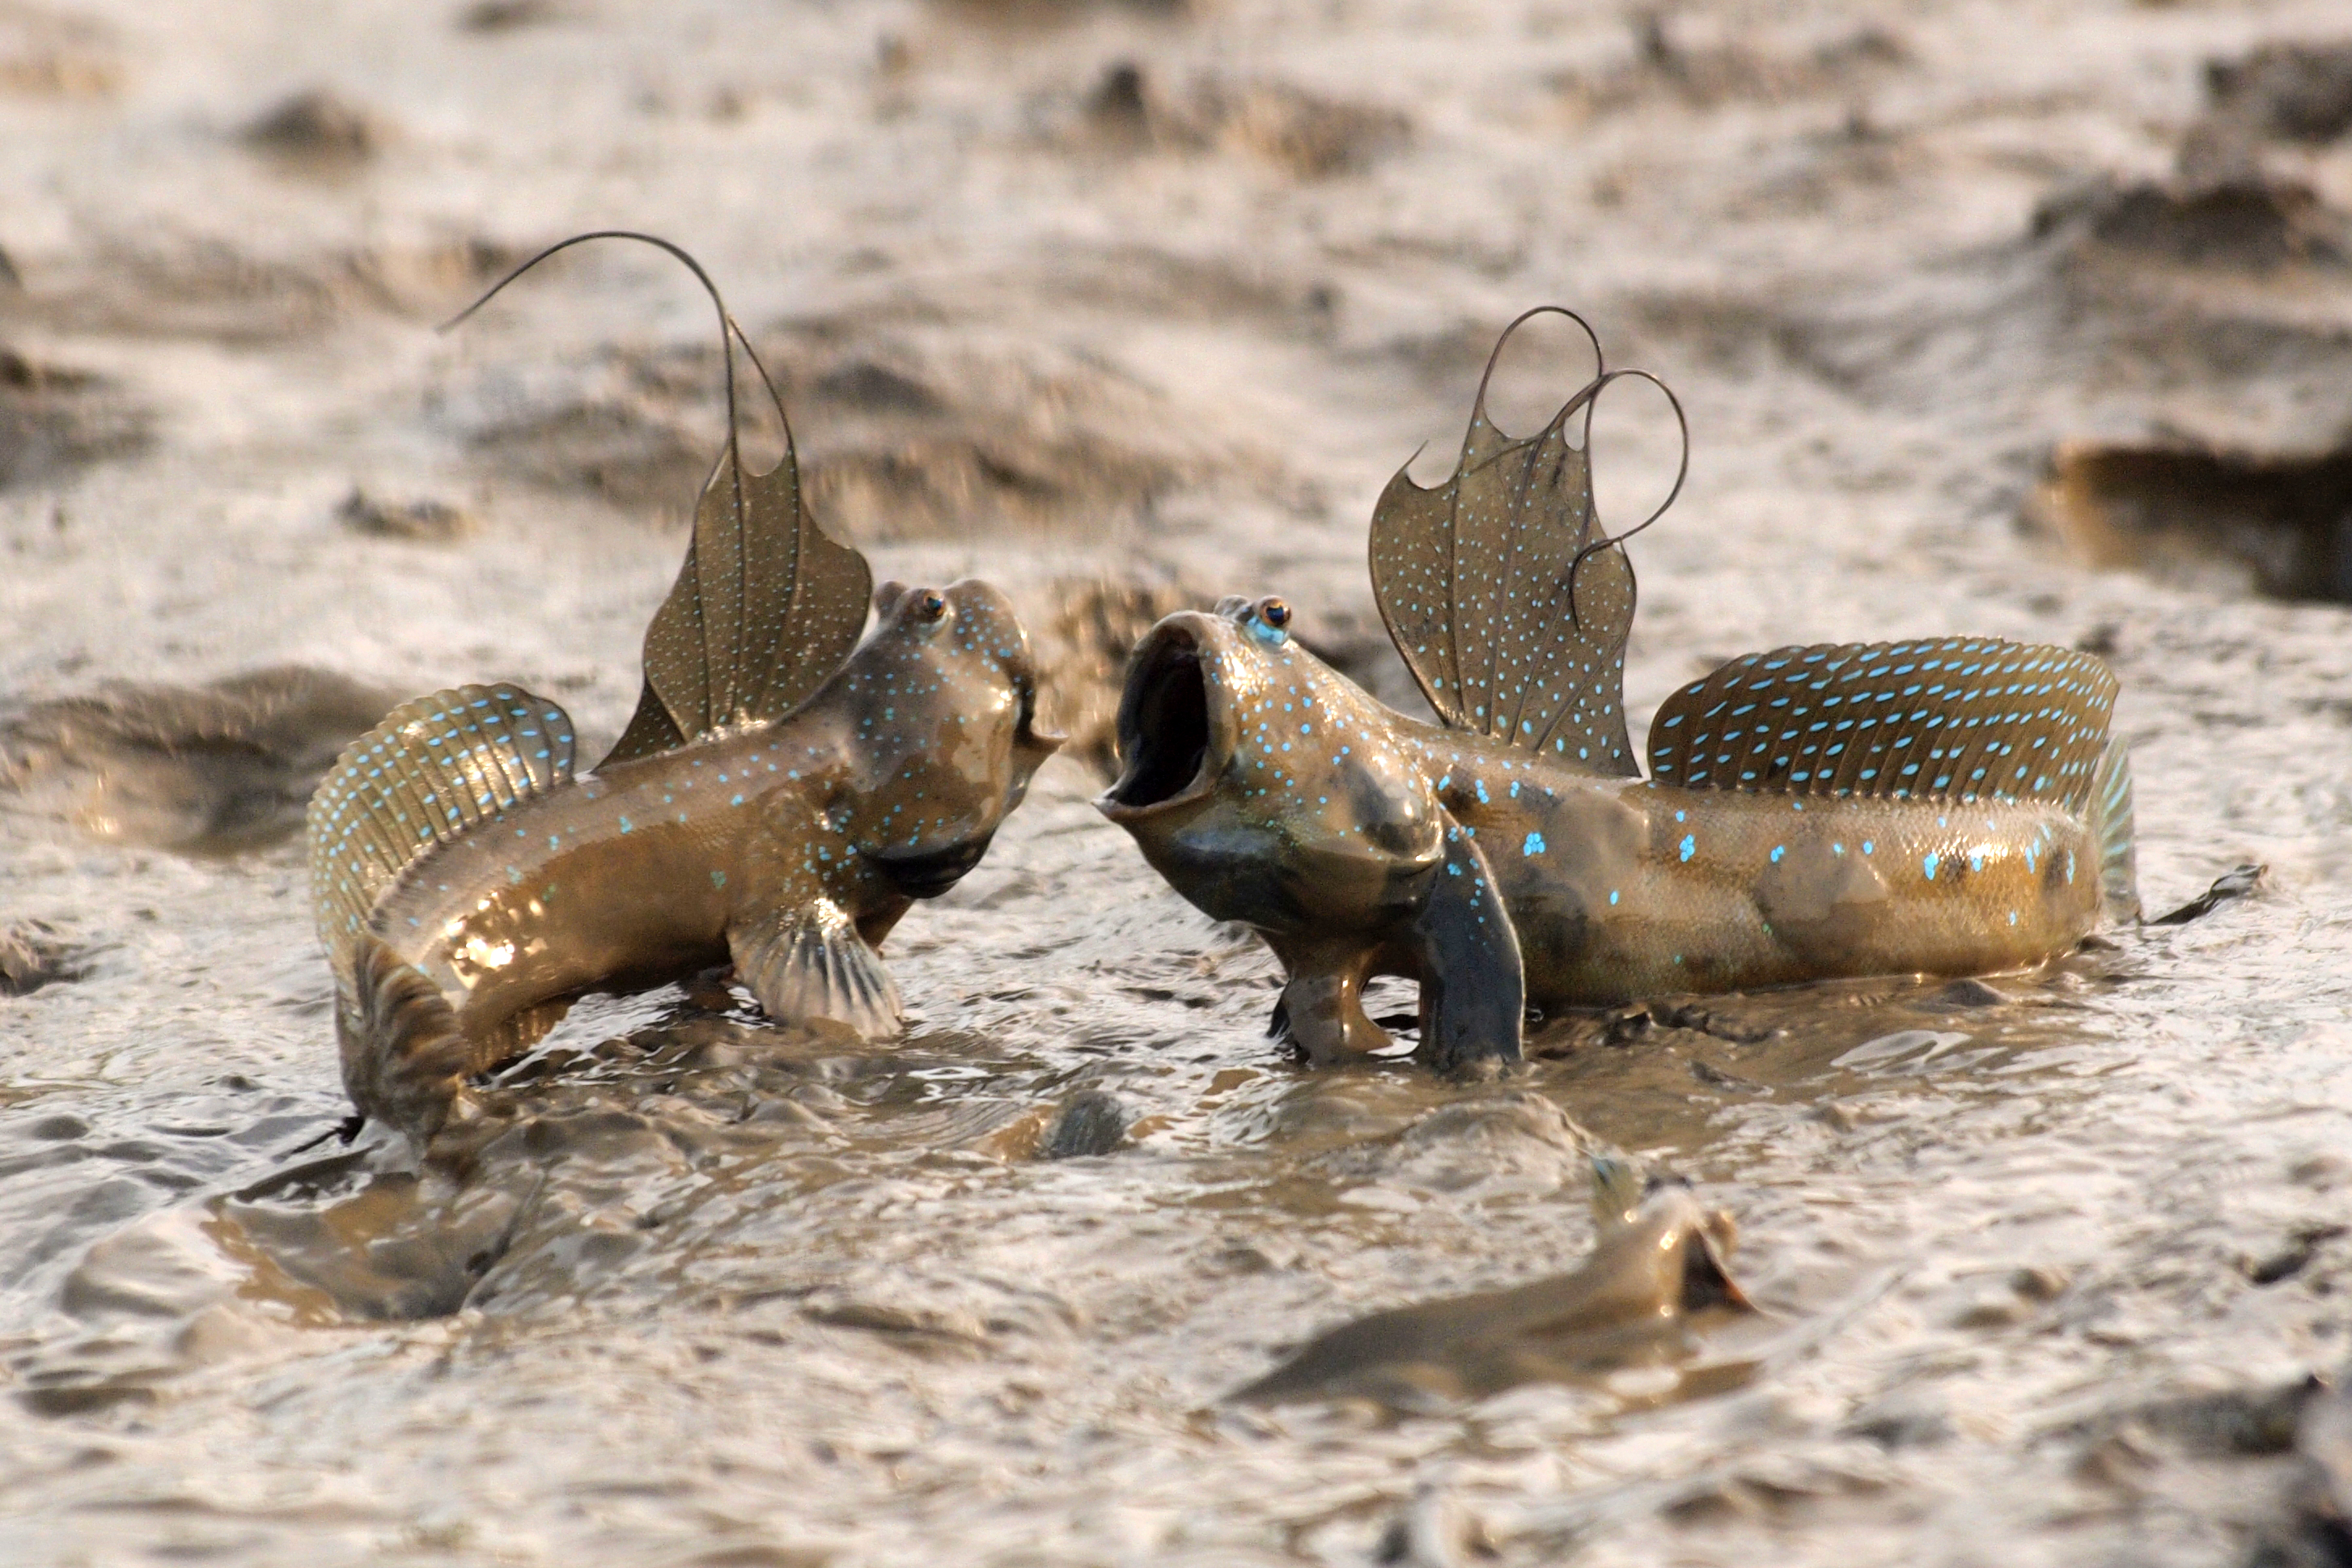 Mudskippers argue over a territory